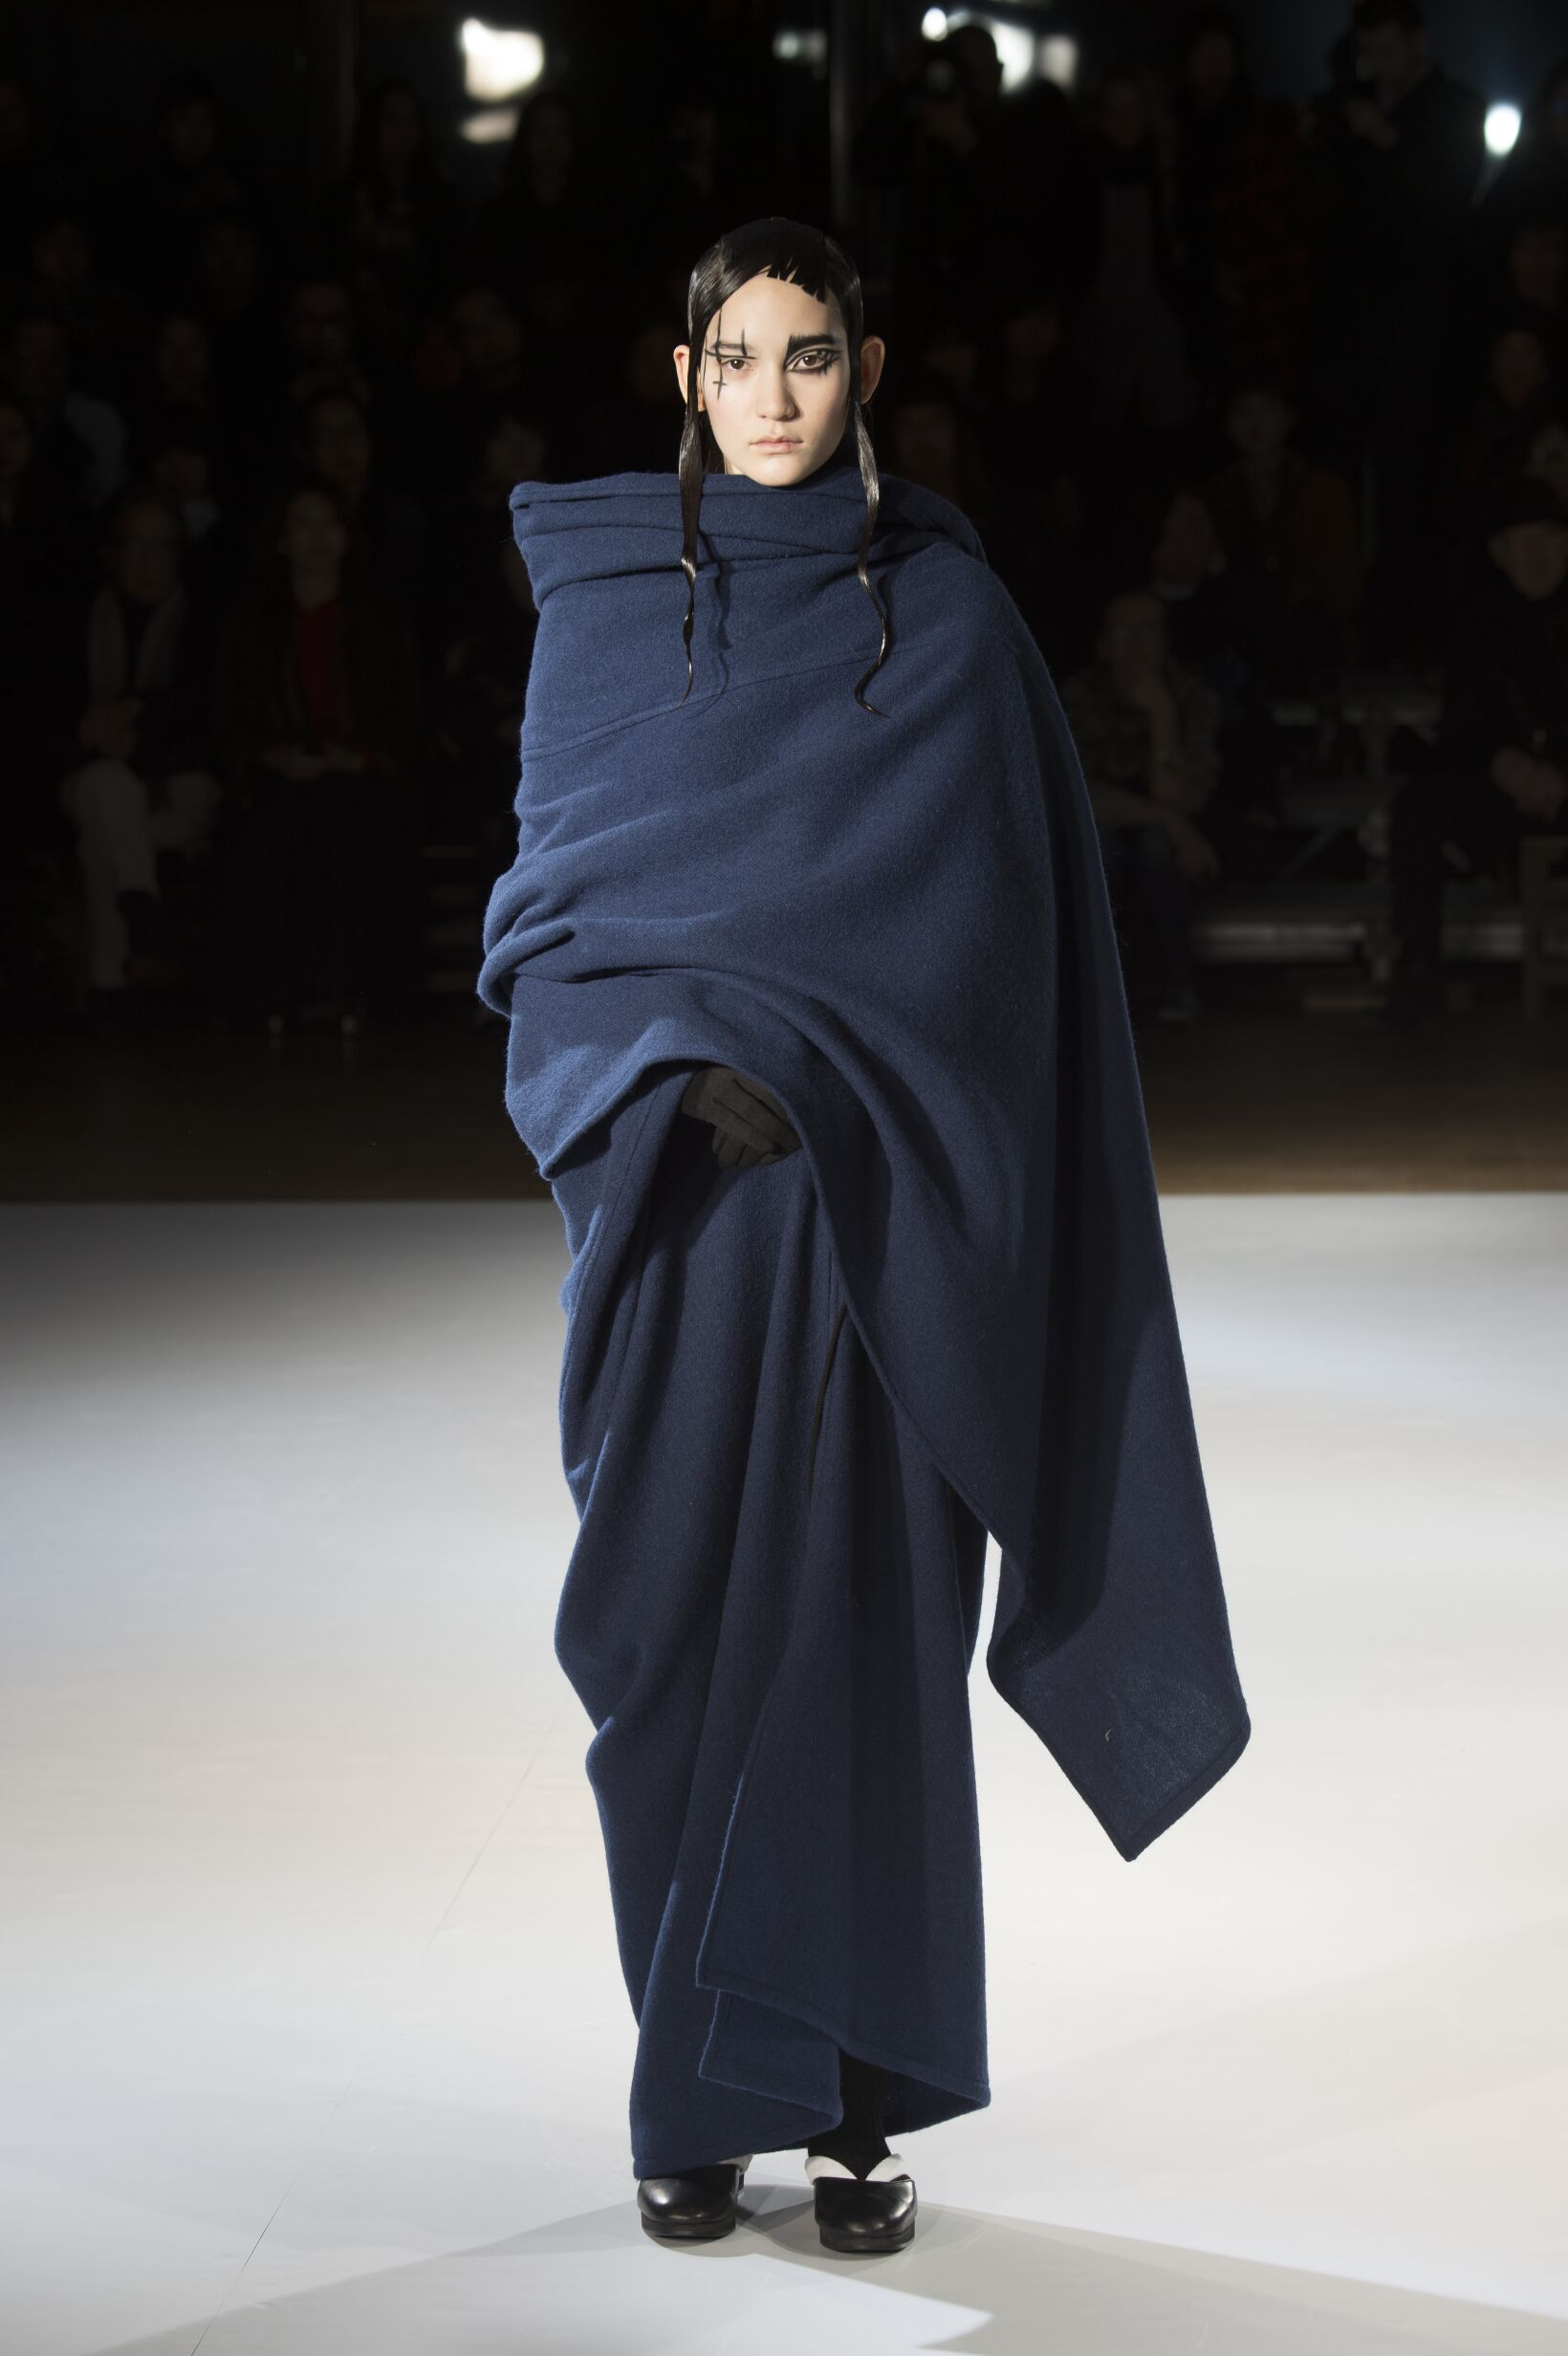 Yohji Yamamoto Collection Winter 2015 Catwalk